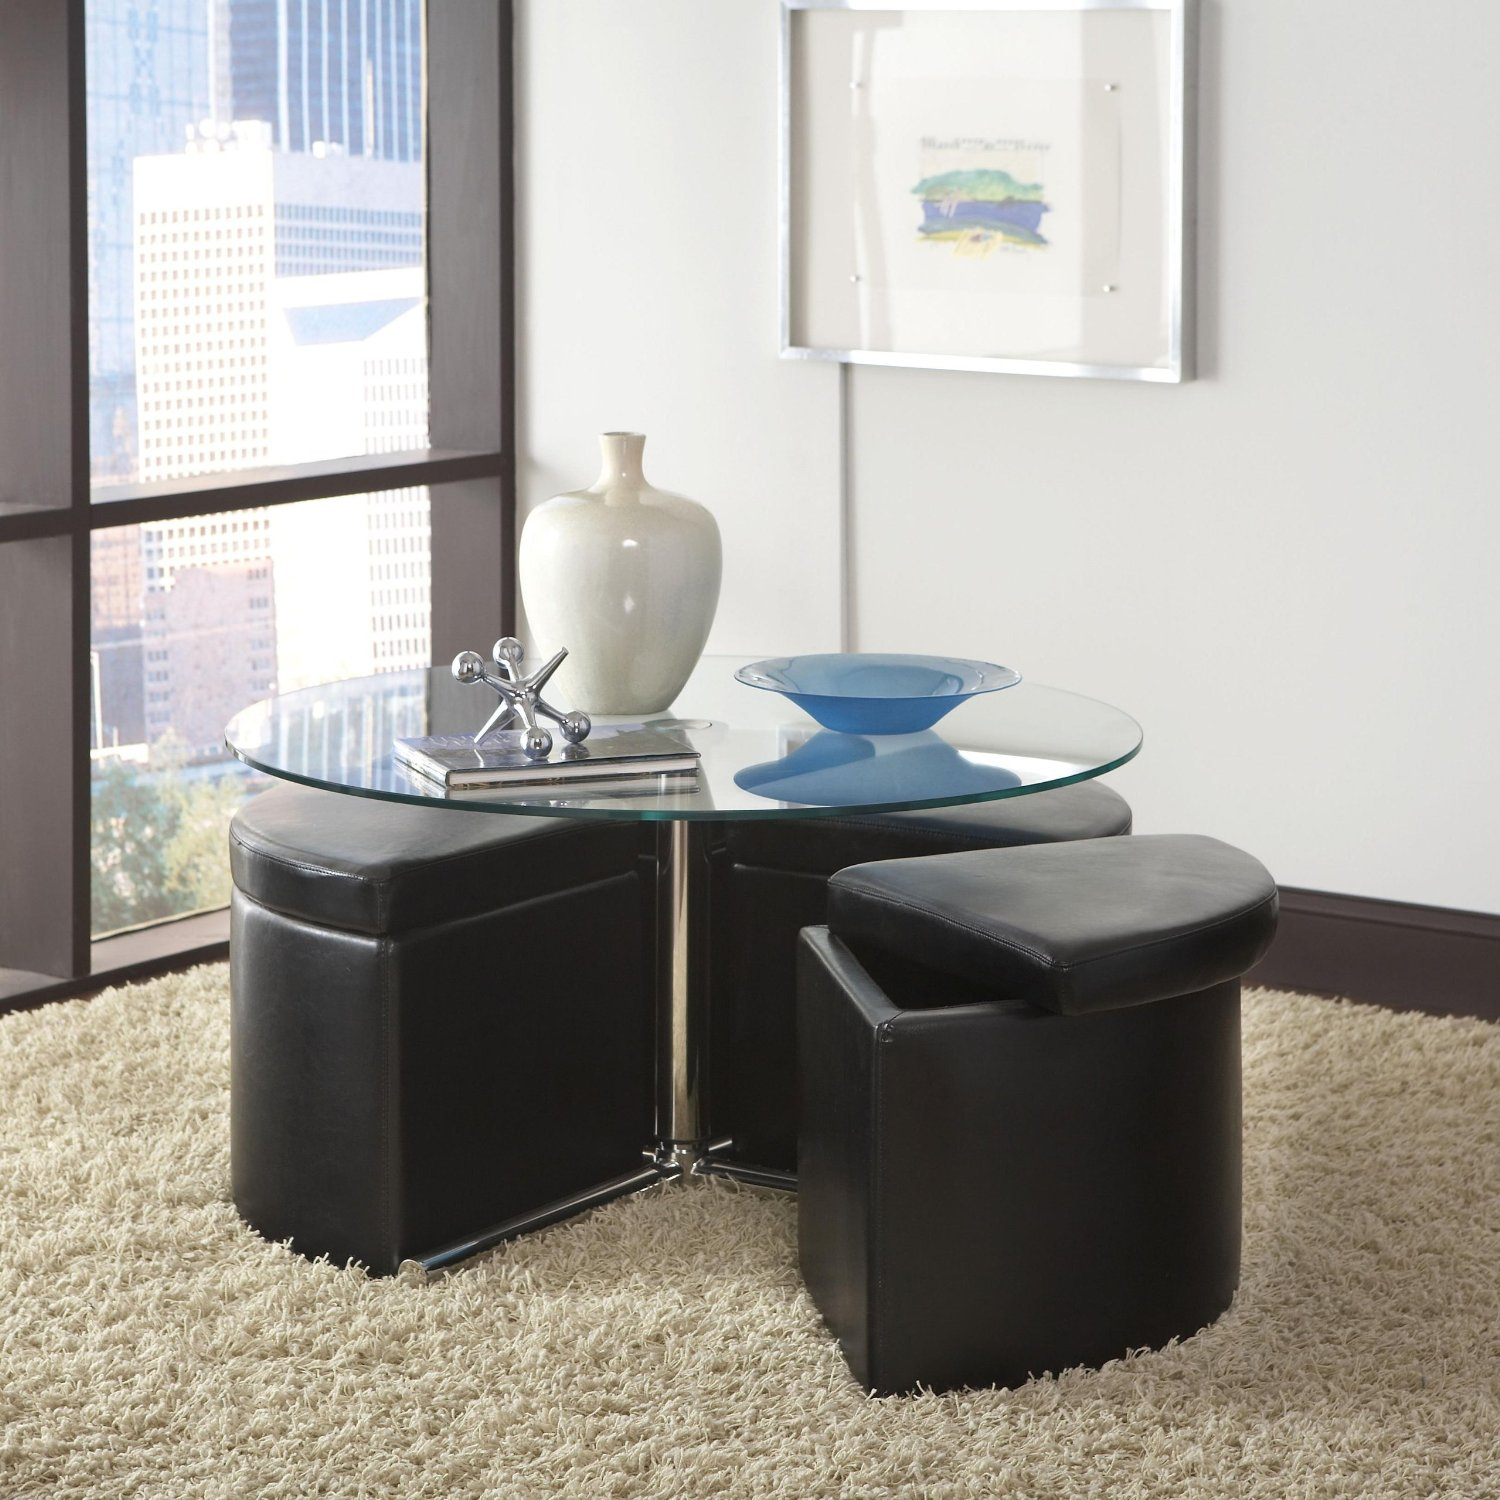 Total Fab Form & Function Cocktail and Coffee Tables with